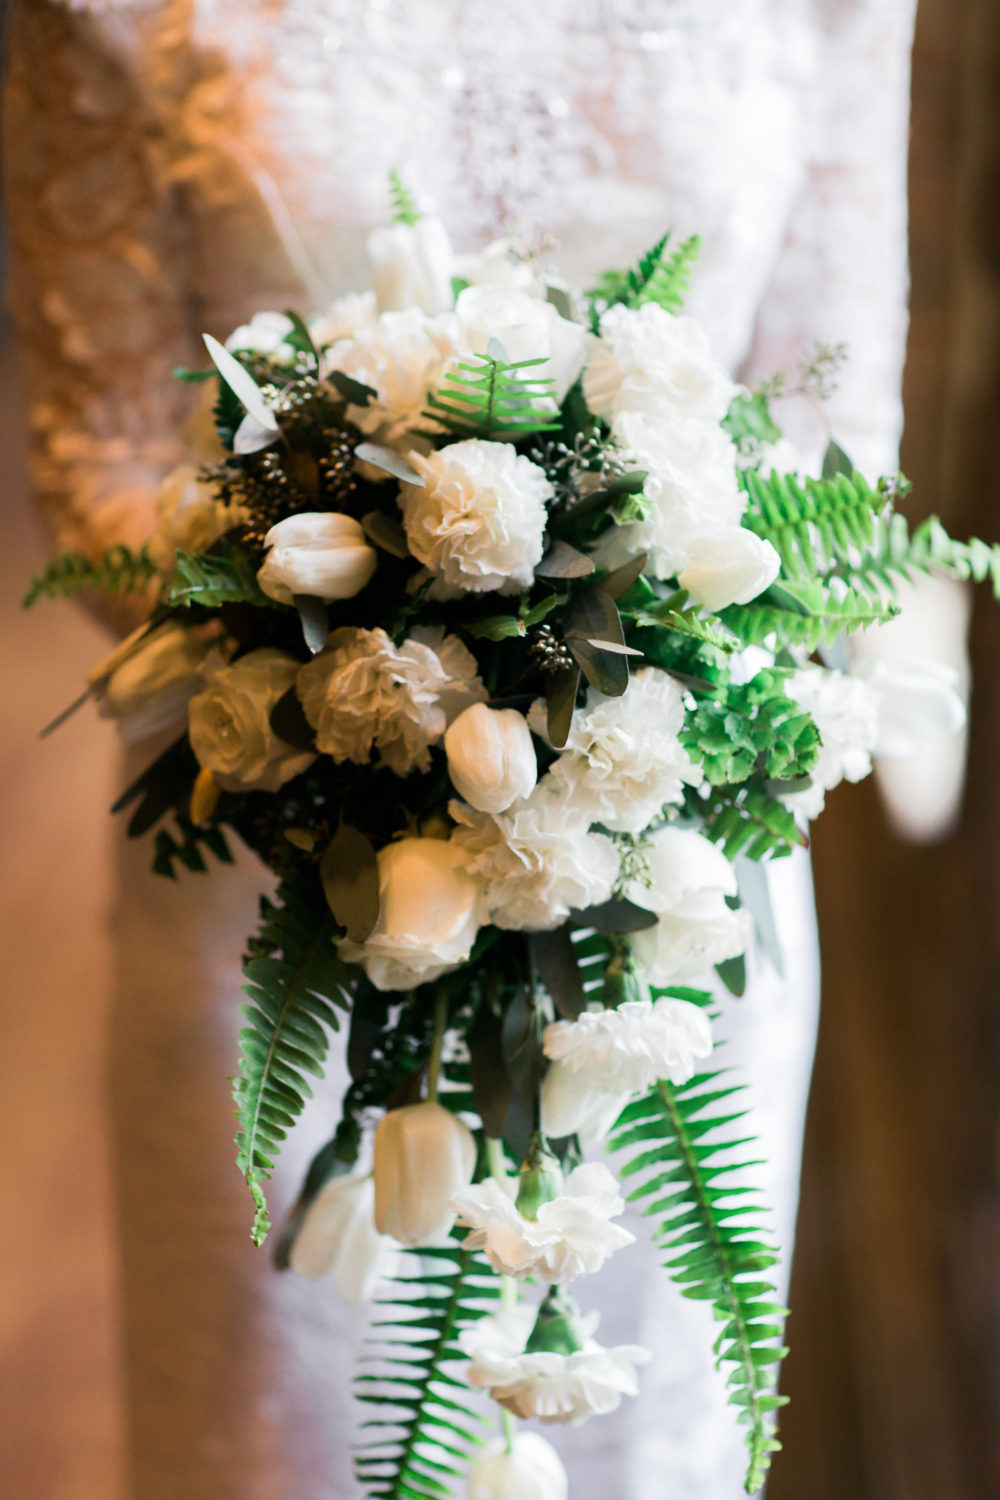 White and green bouquet by Saint Charles florist